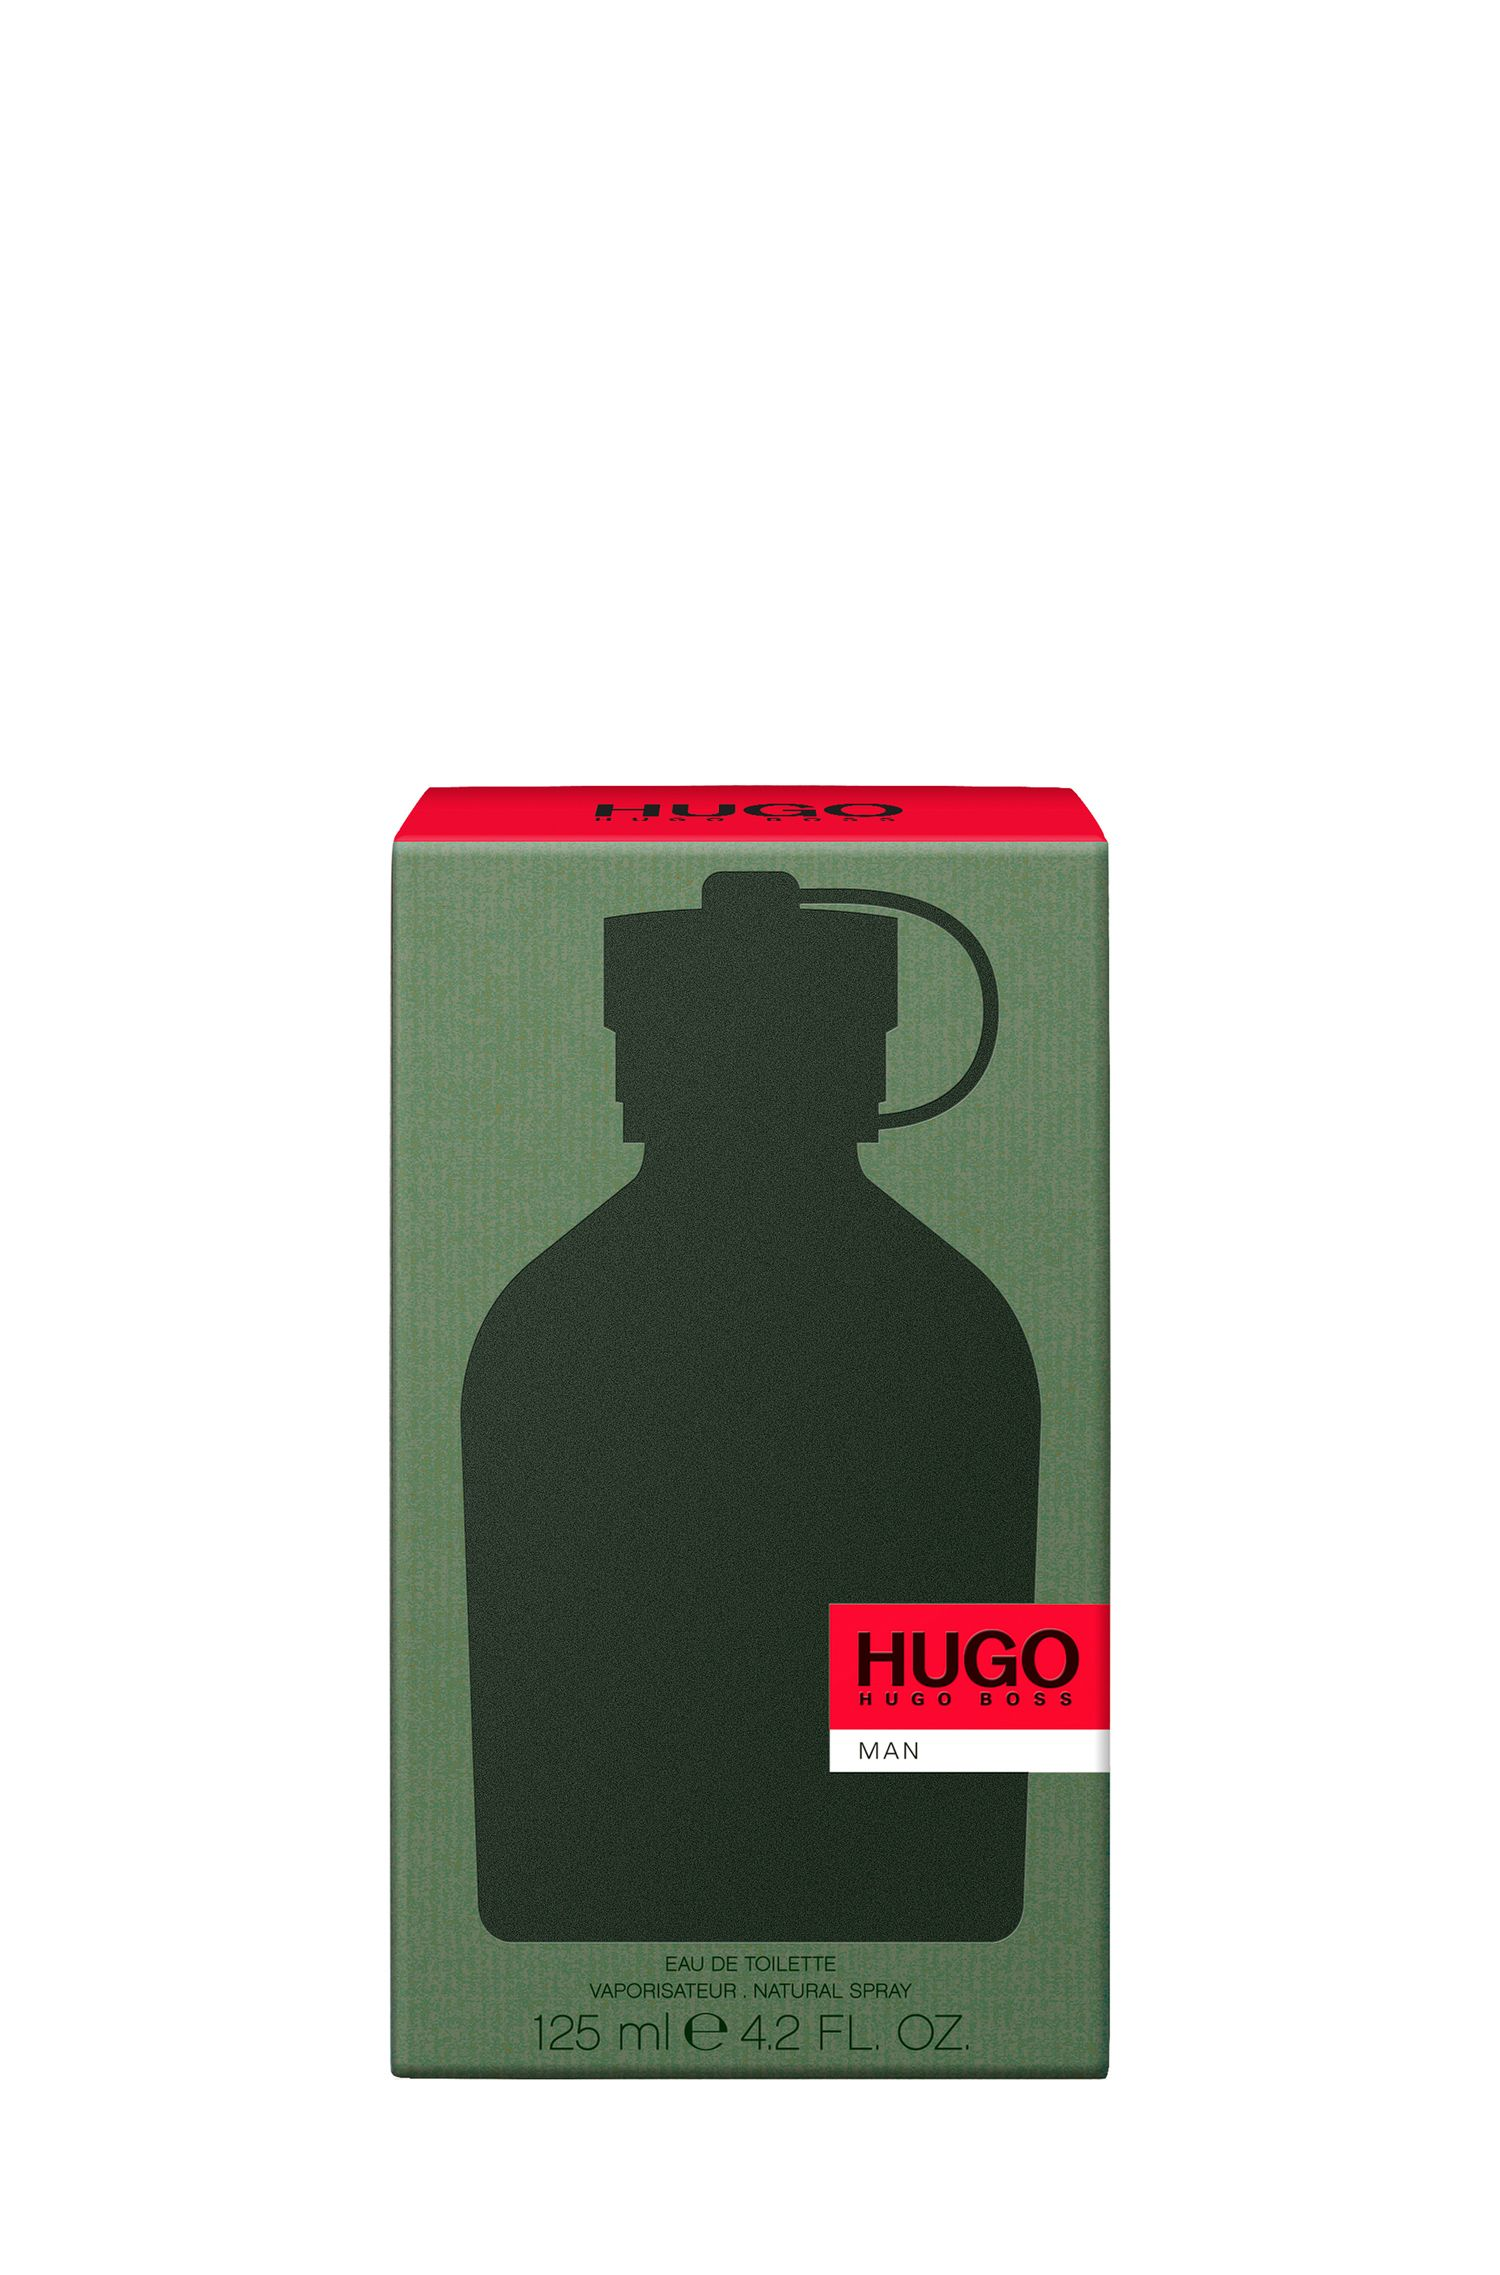 HUGO Man Eau de Toilette 125 ml , Assorted-Pre-Pack